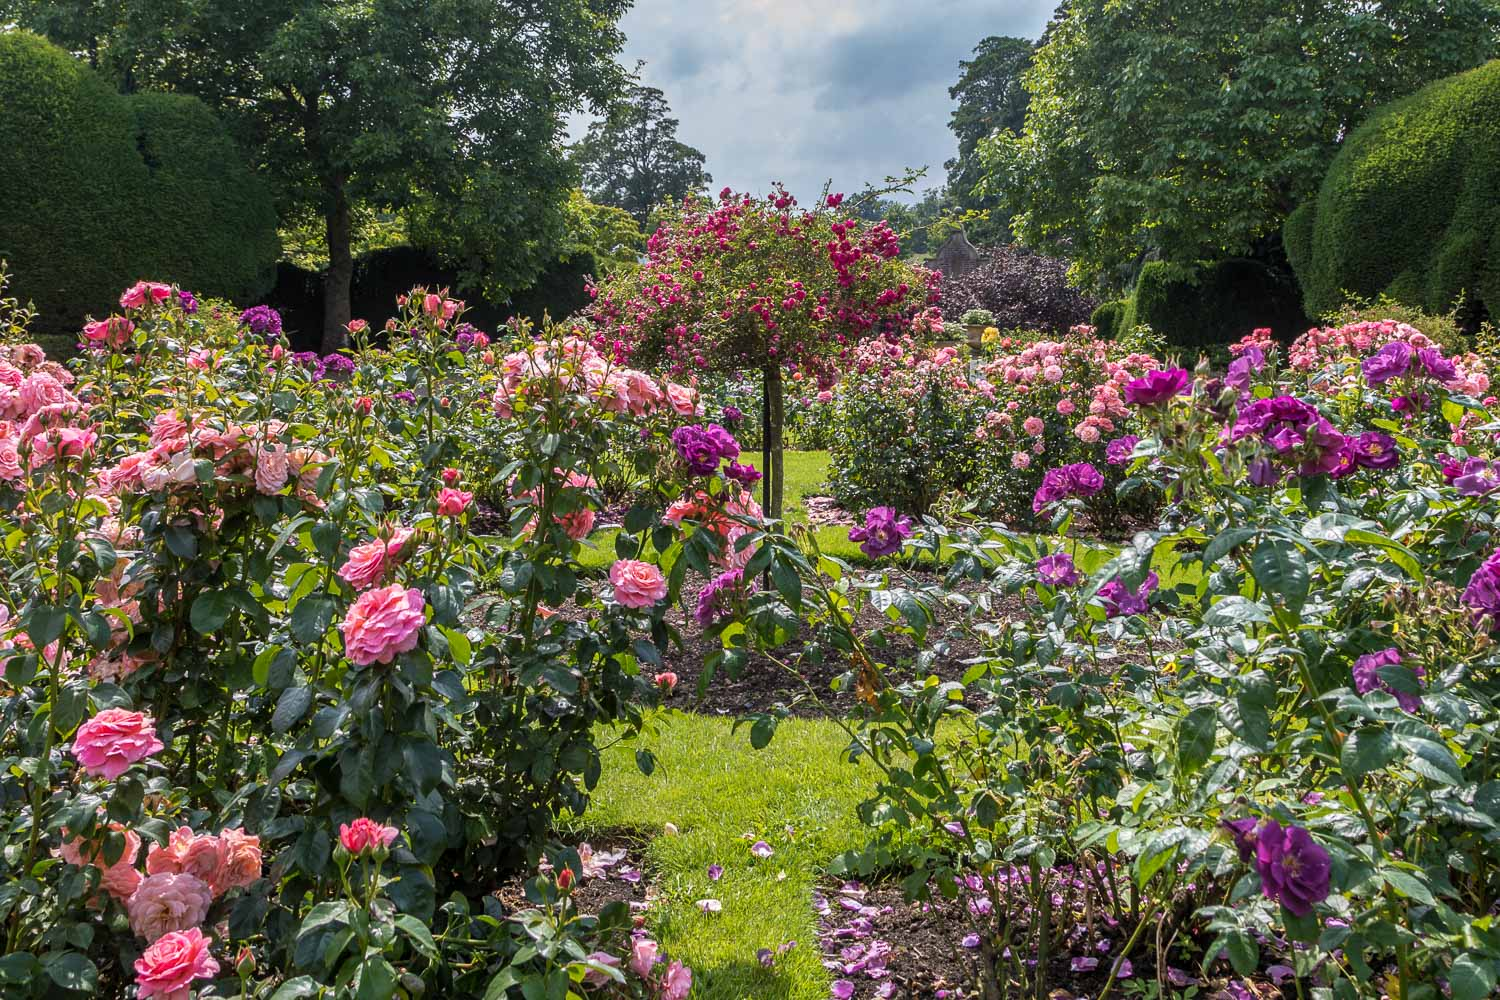 Raby Castle rose garden